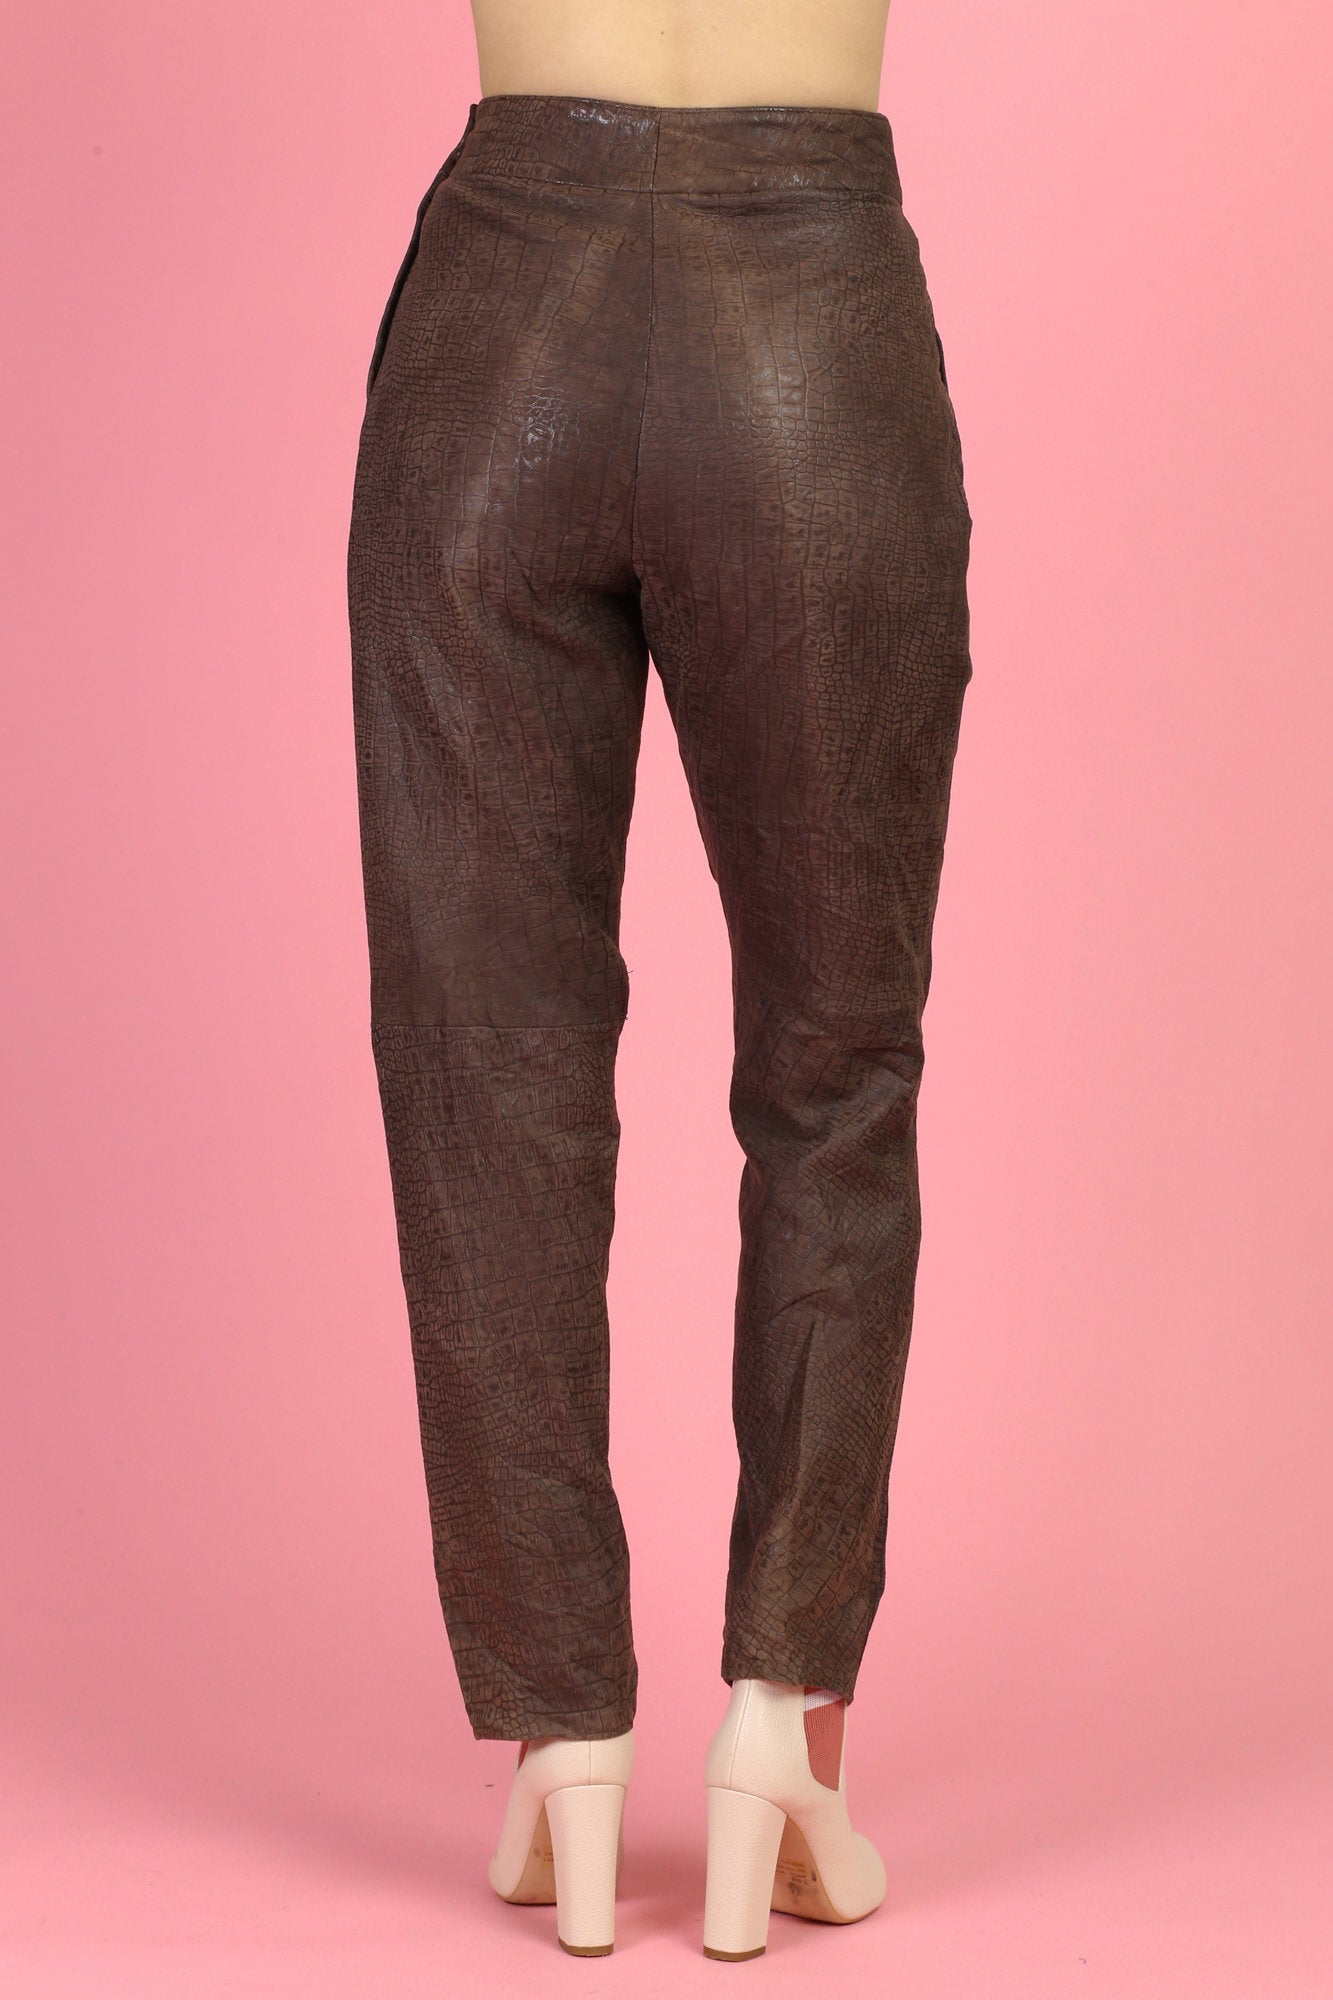 80s Alligator Embossed Leather Trousers - Small